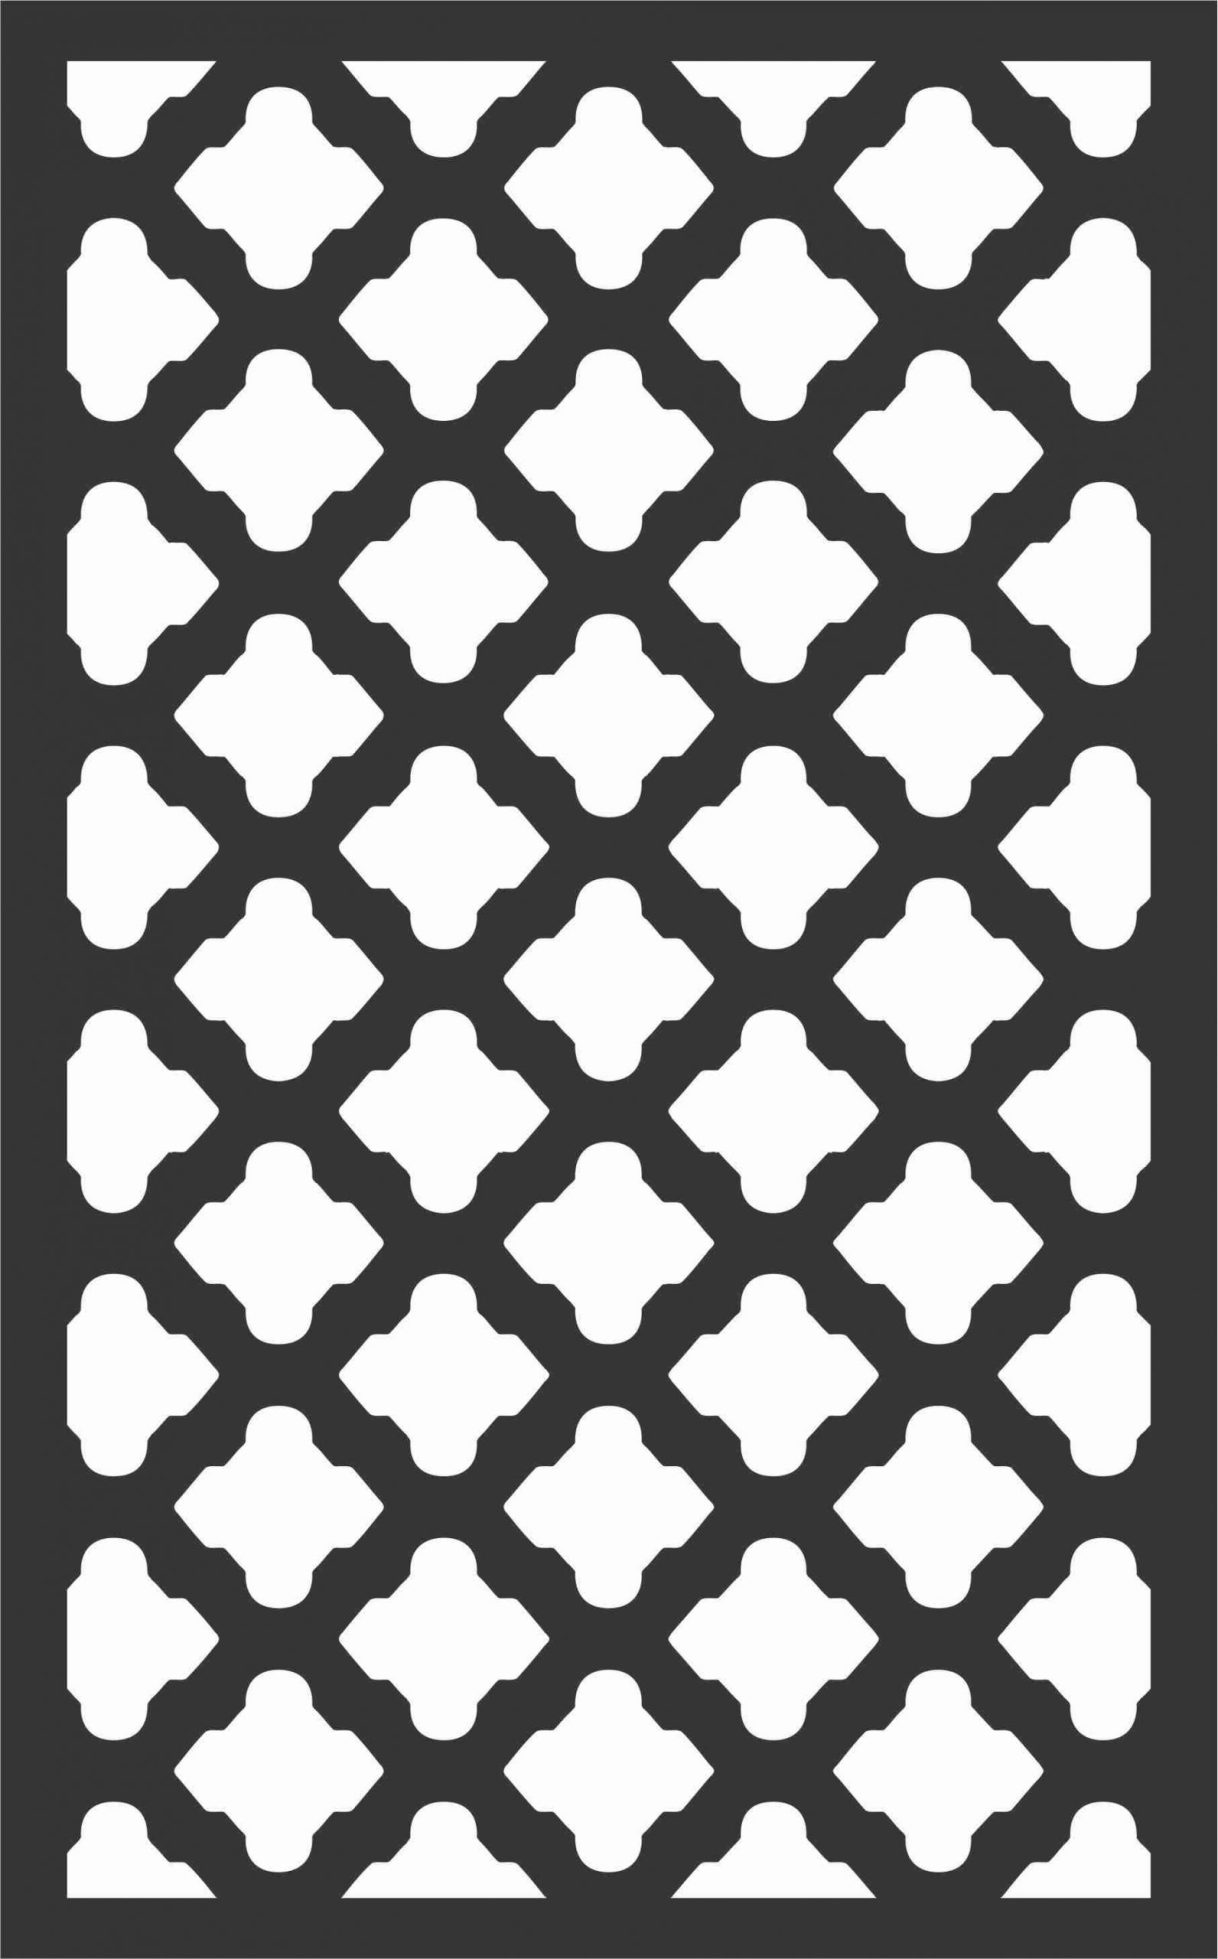 Floral Screen Patterns Design 89 Free DXF File